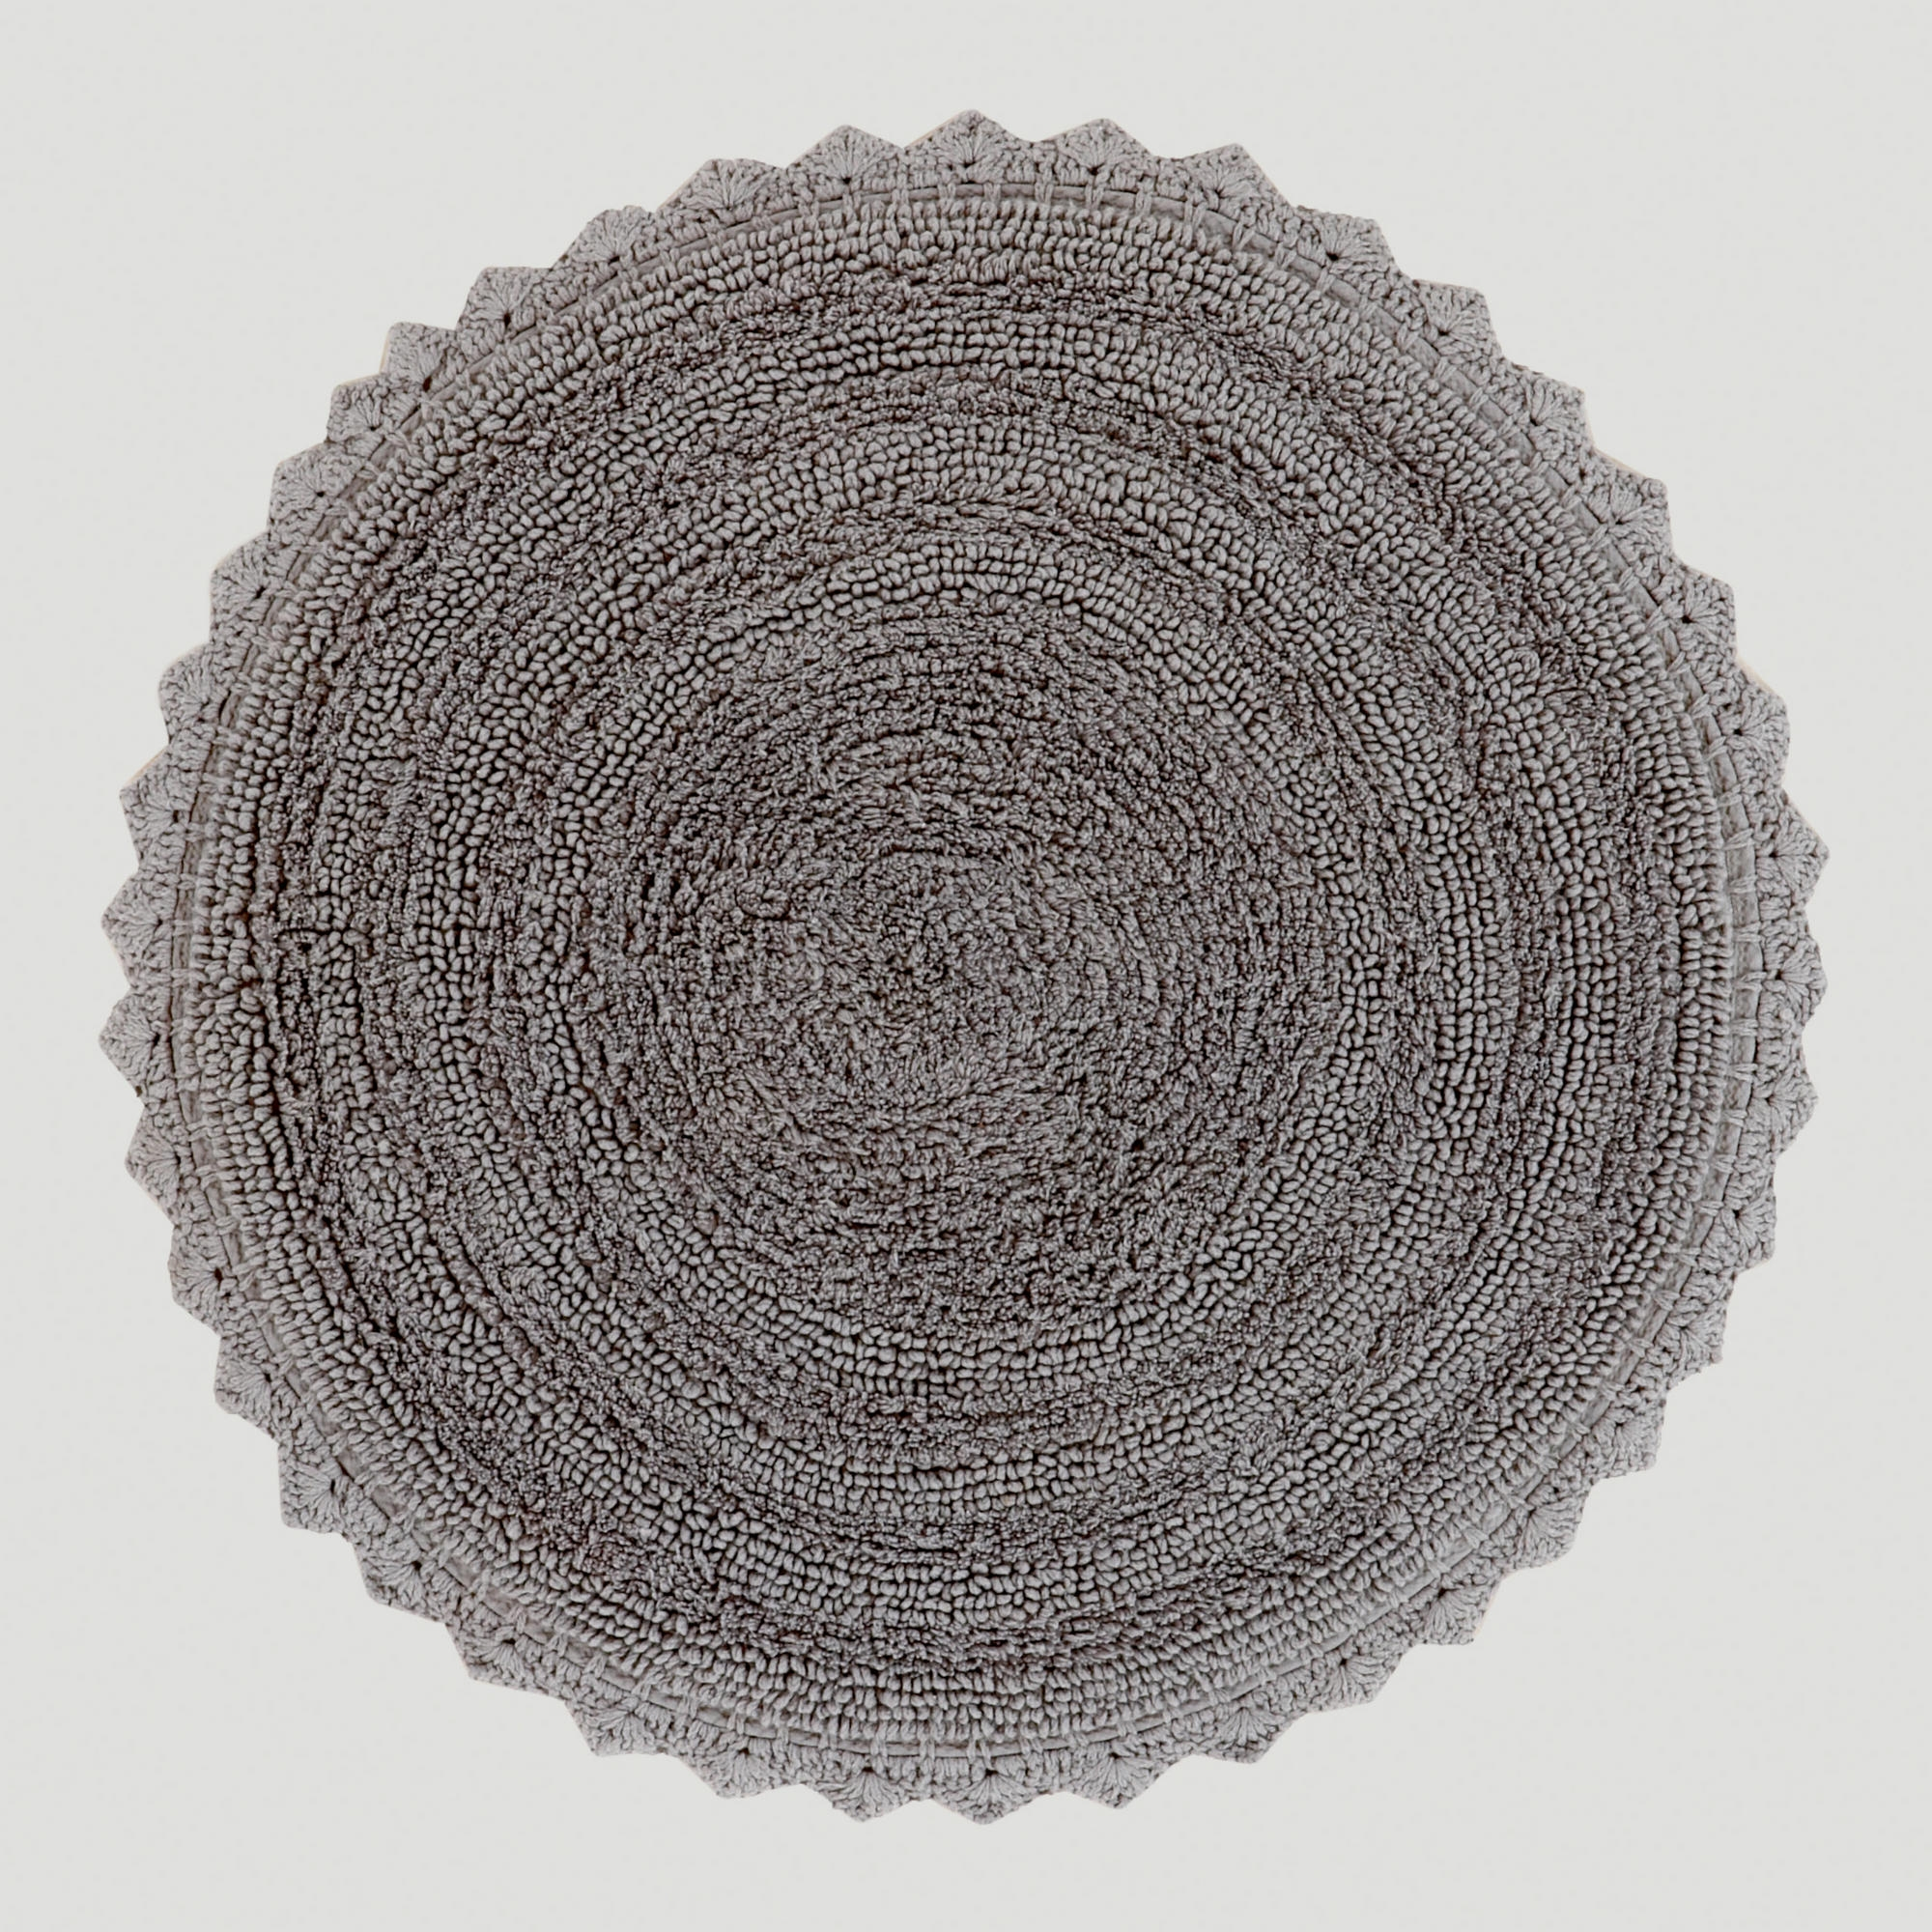 Permalink to Small Round Bathroom Mat